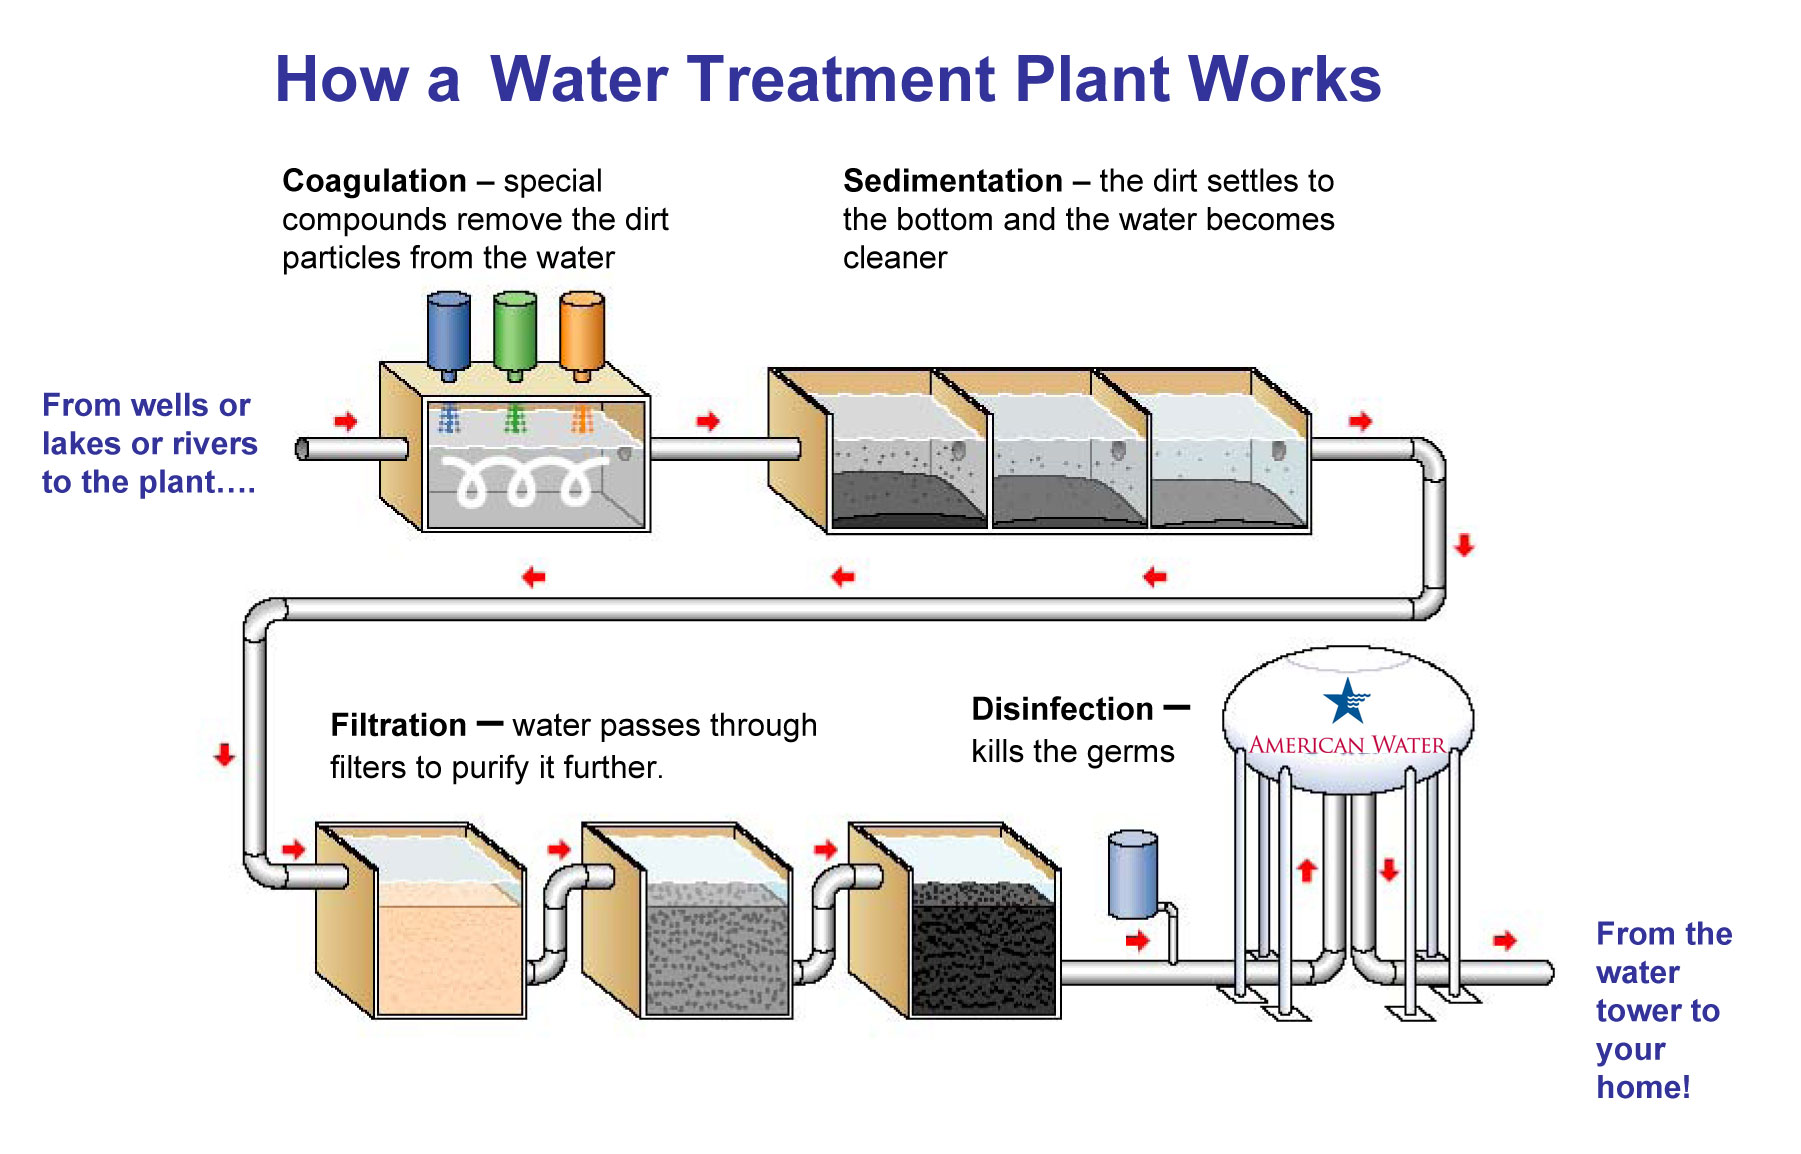 8432Water Treatment process